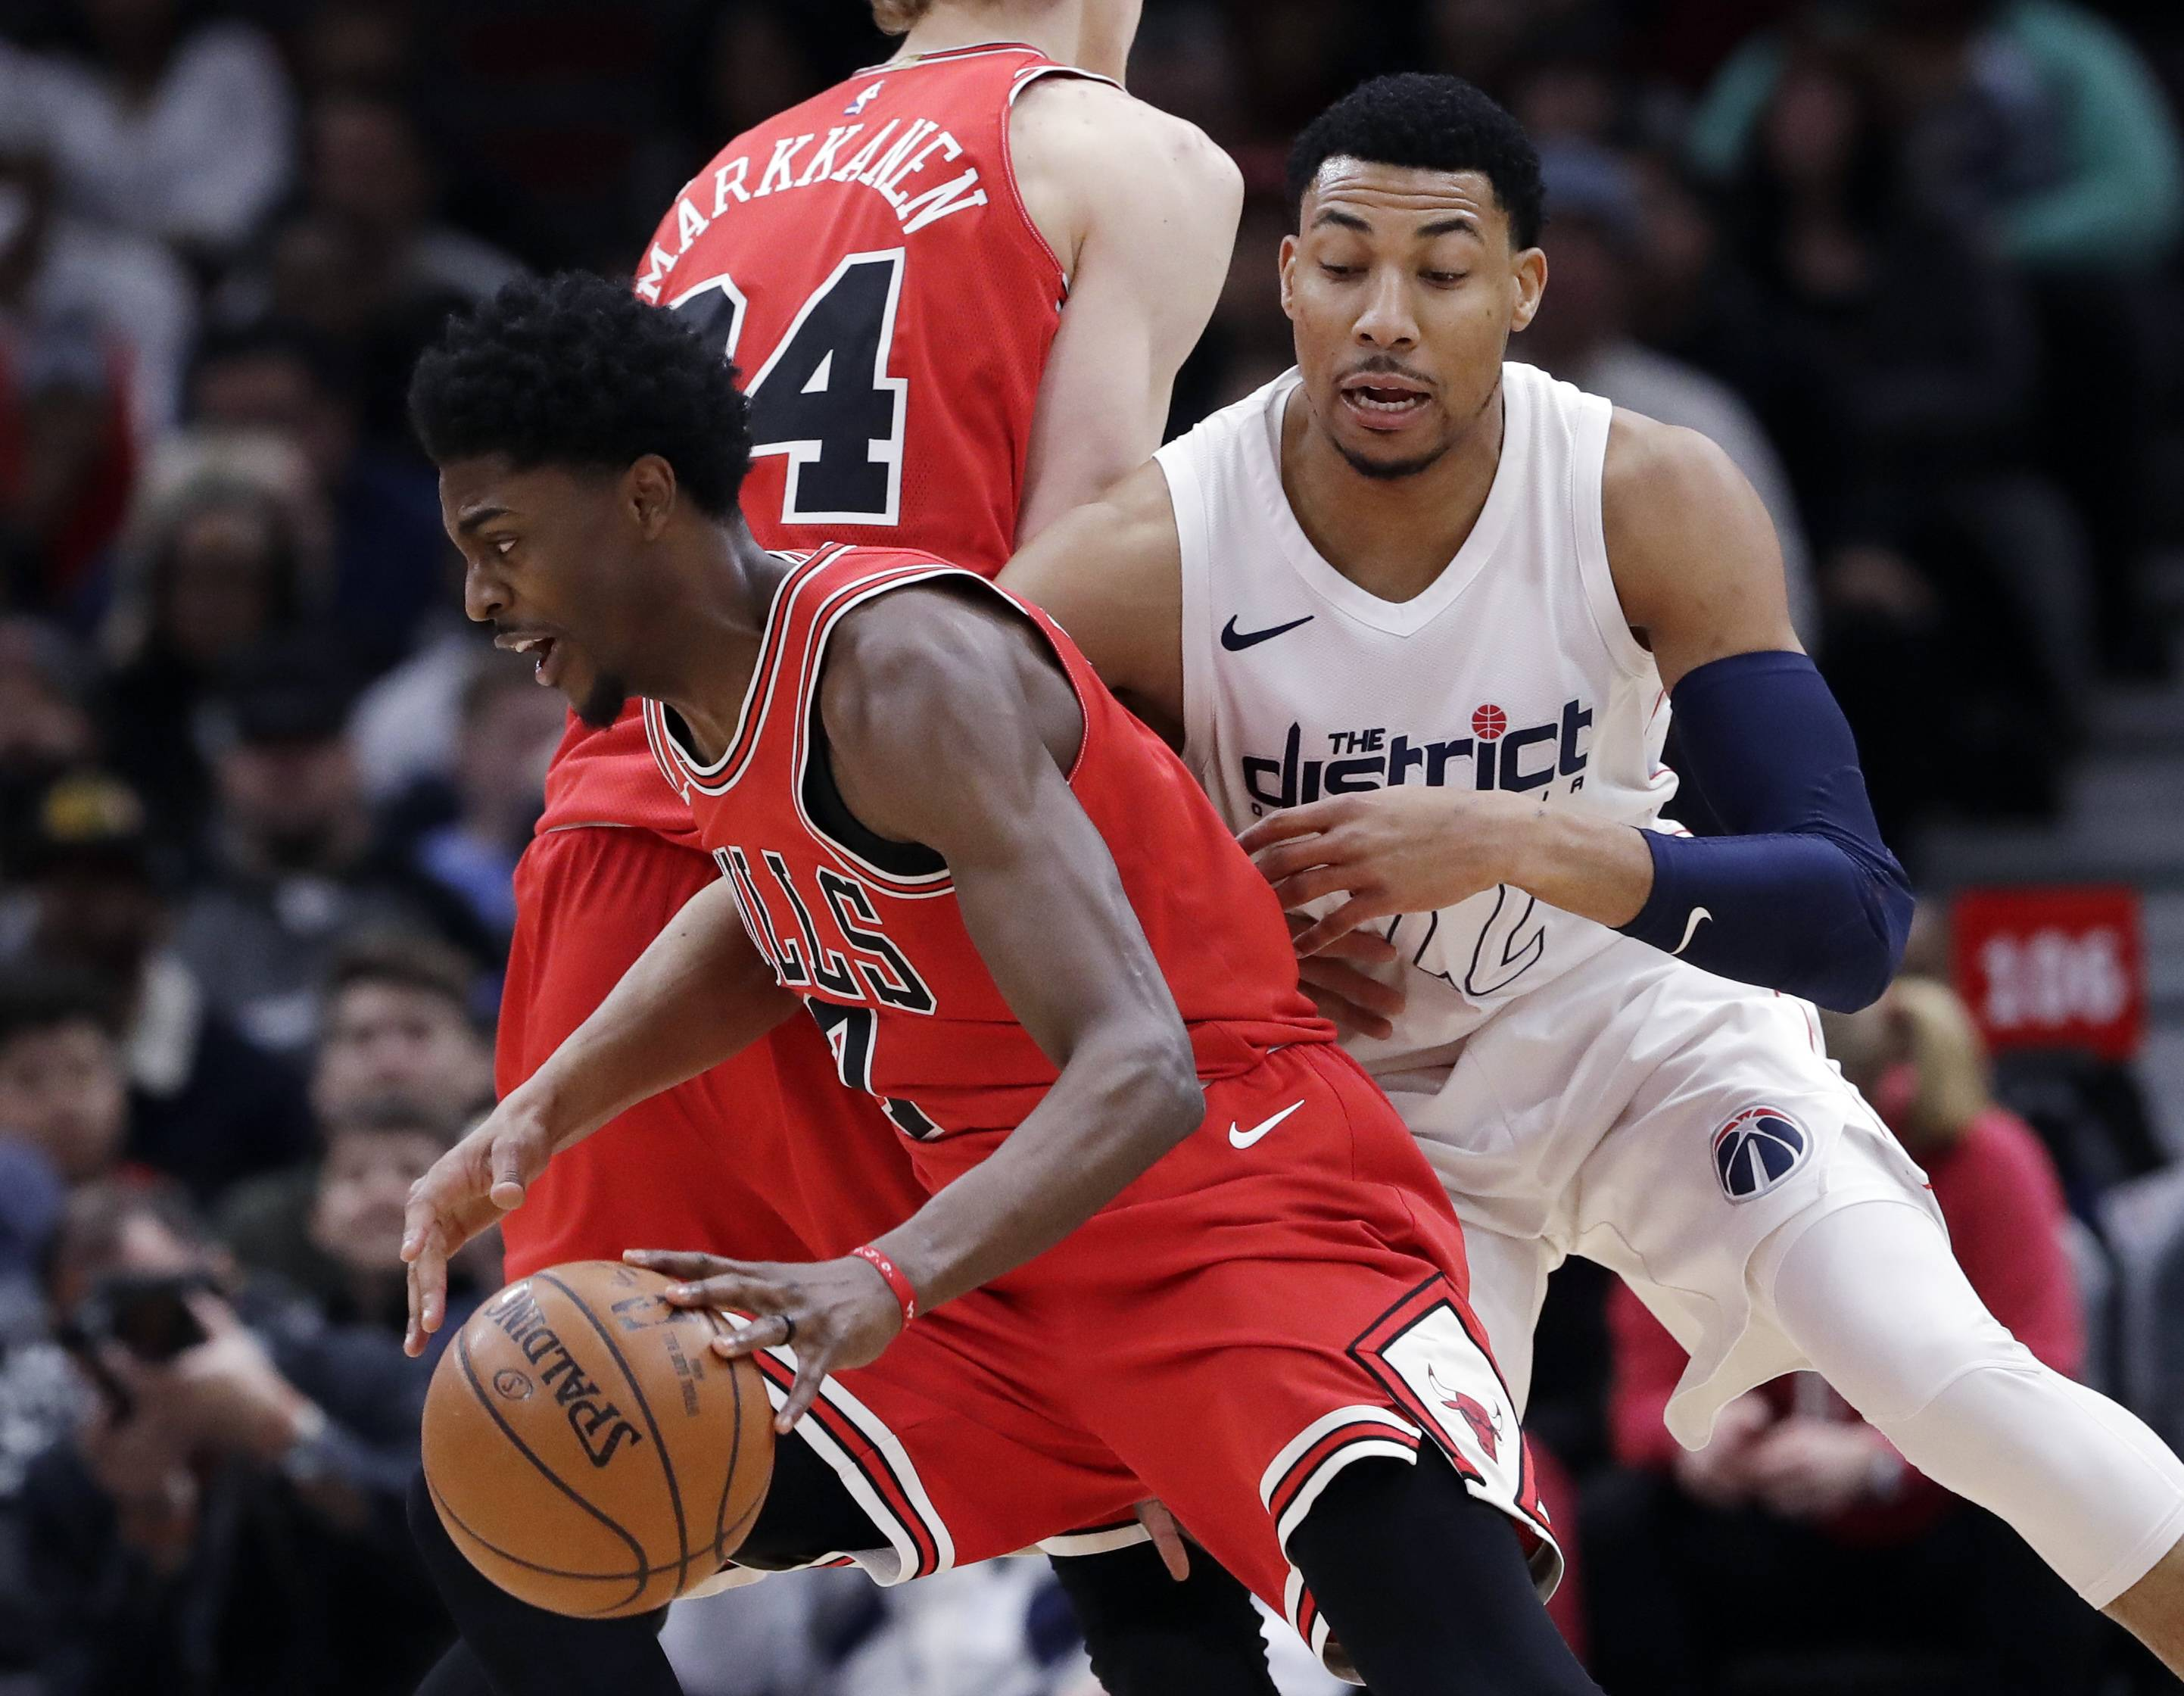 With Hoiberg out sick, Chicago Bulls get surprising win over Washington